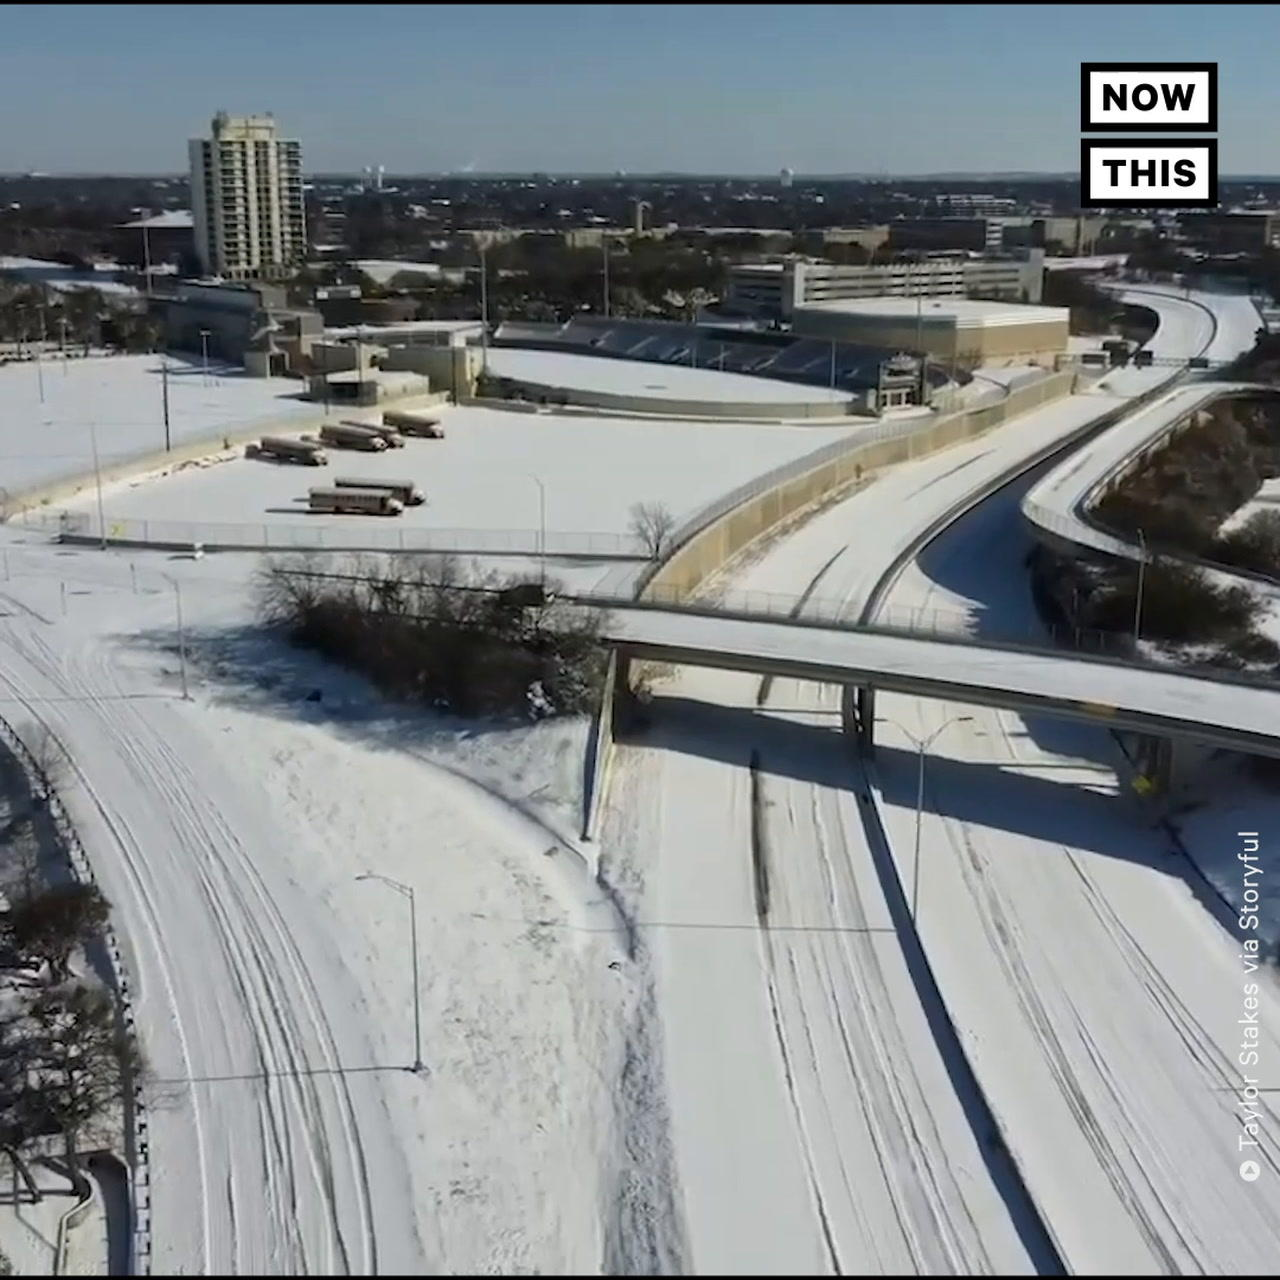 Drone Footage Shows San Antonio, Texas, Covered in Snow